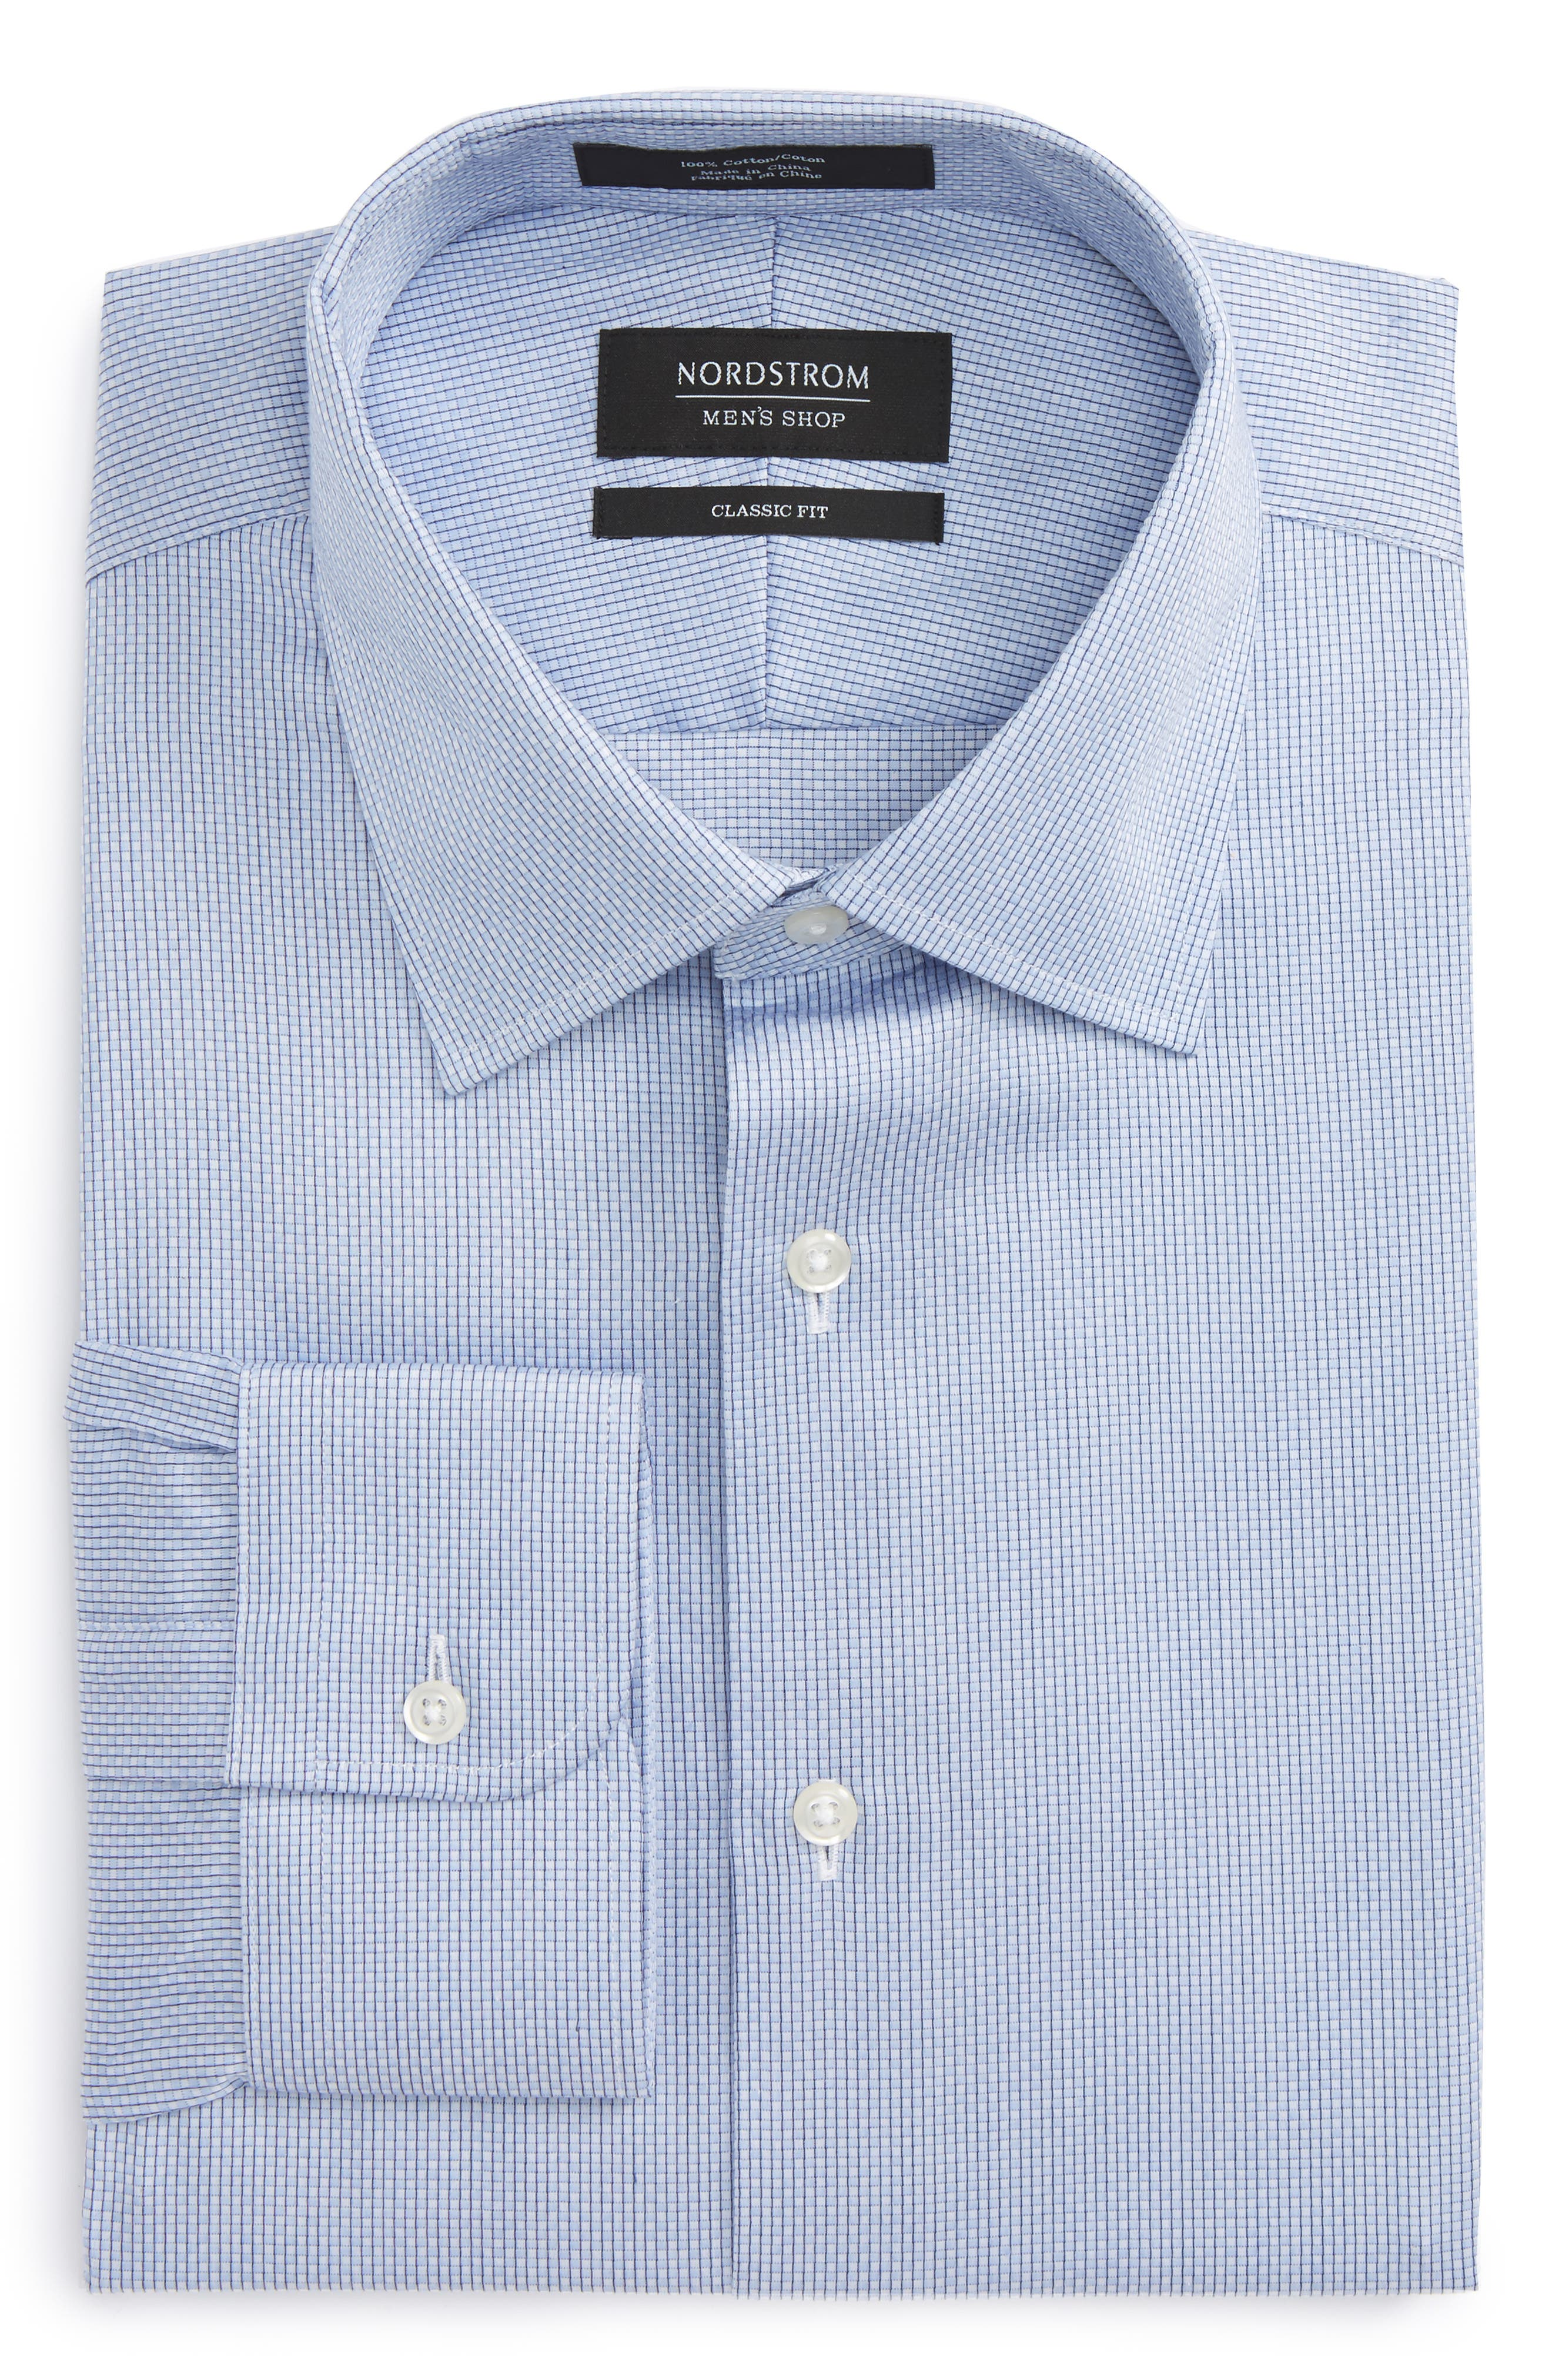 Classic Fit Check Dress Shirt,                         Main,                         color, 450